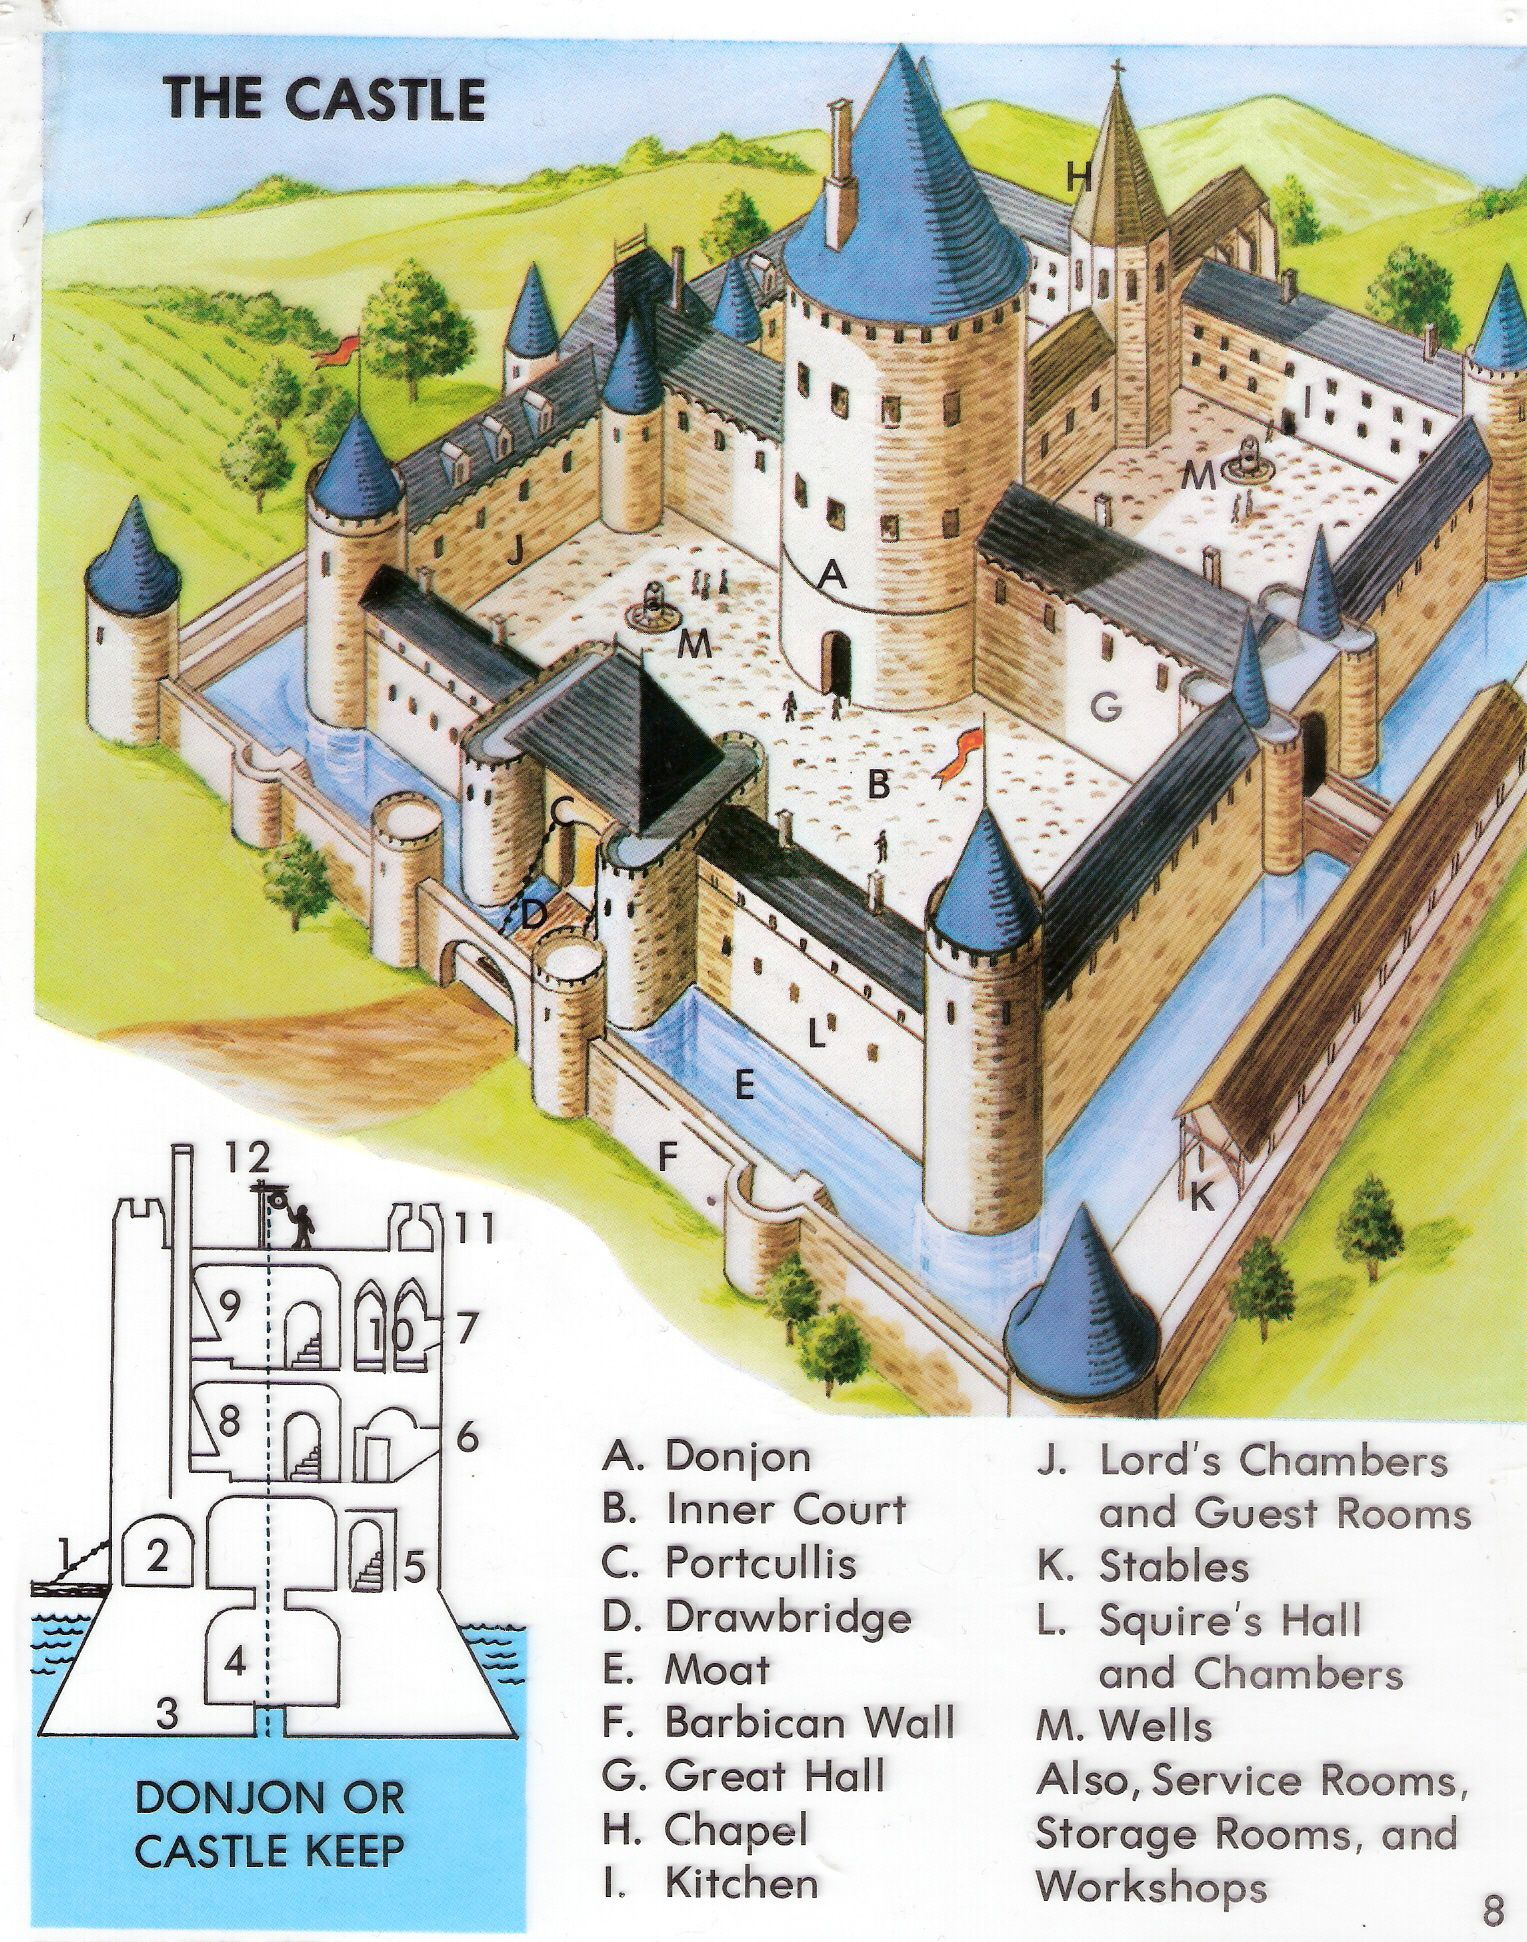 castle diagram with labels craftsman pressure washer ss6shms licensed for non commercial use only